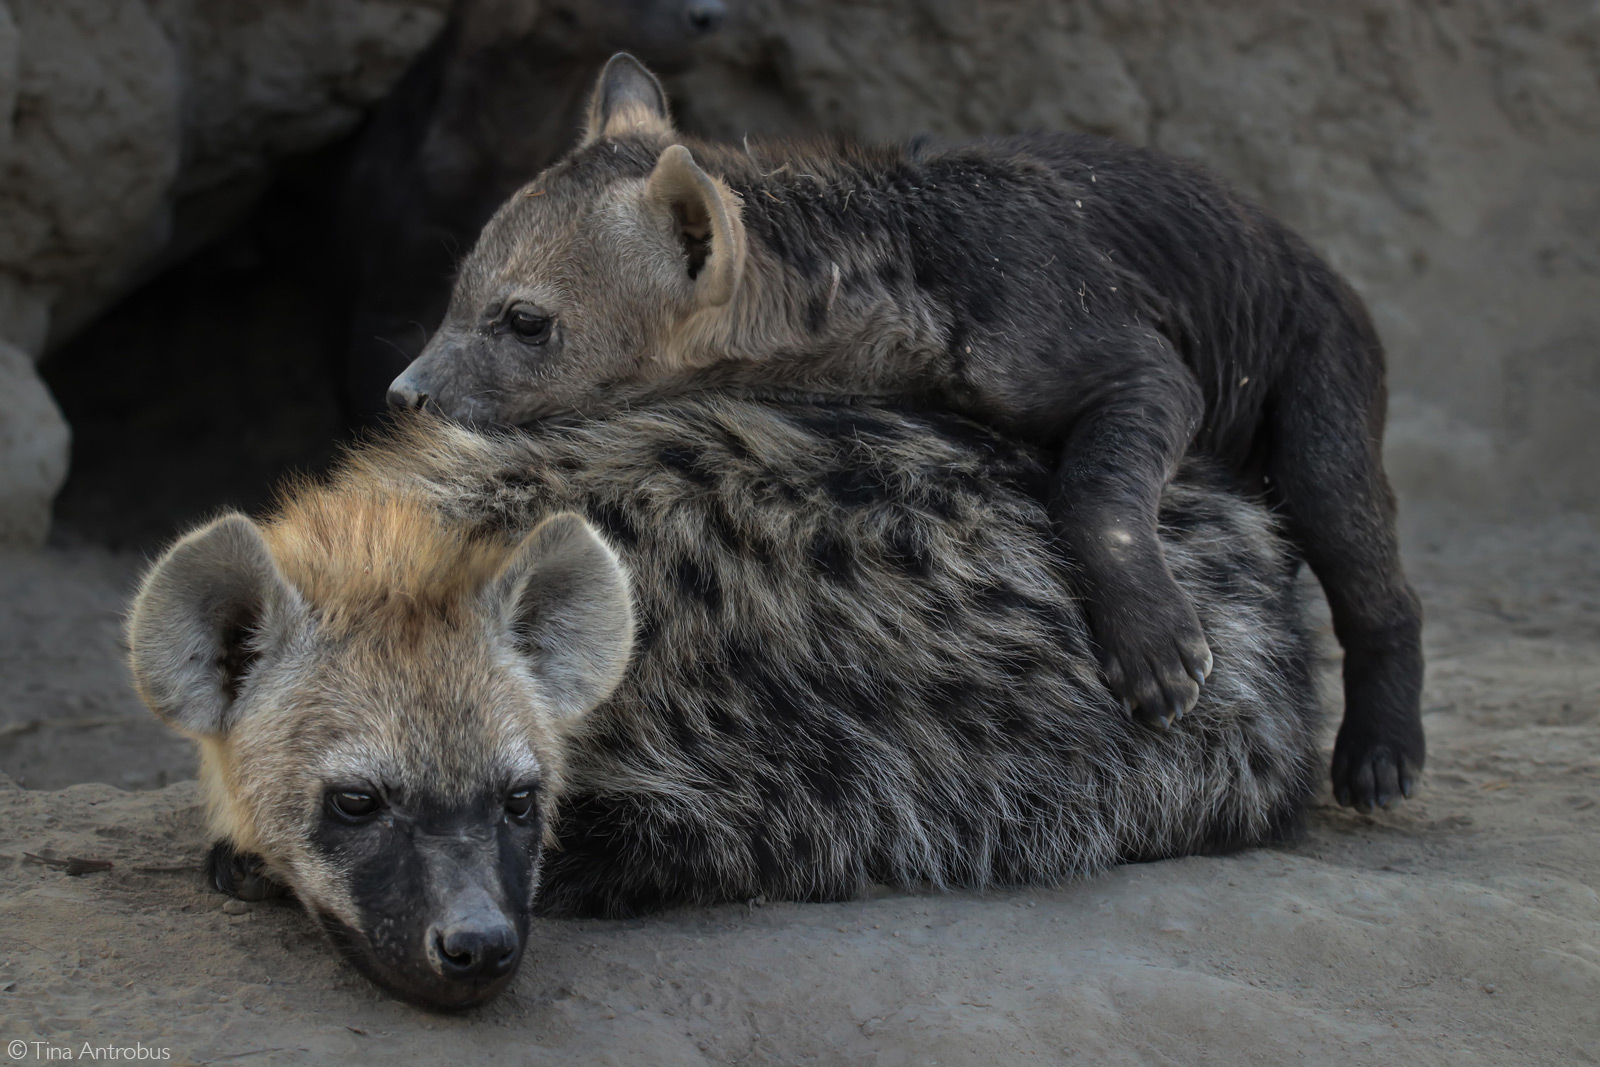 A spotted hyena cub looking after its sibling. Timbavati Game Reserve, South Africa © Tina Antrobus